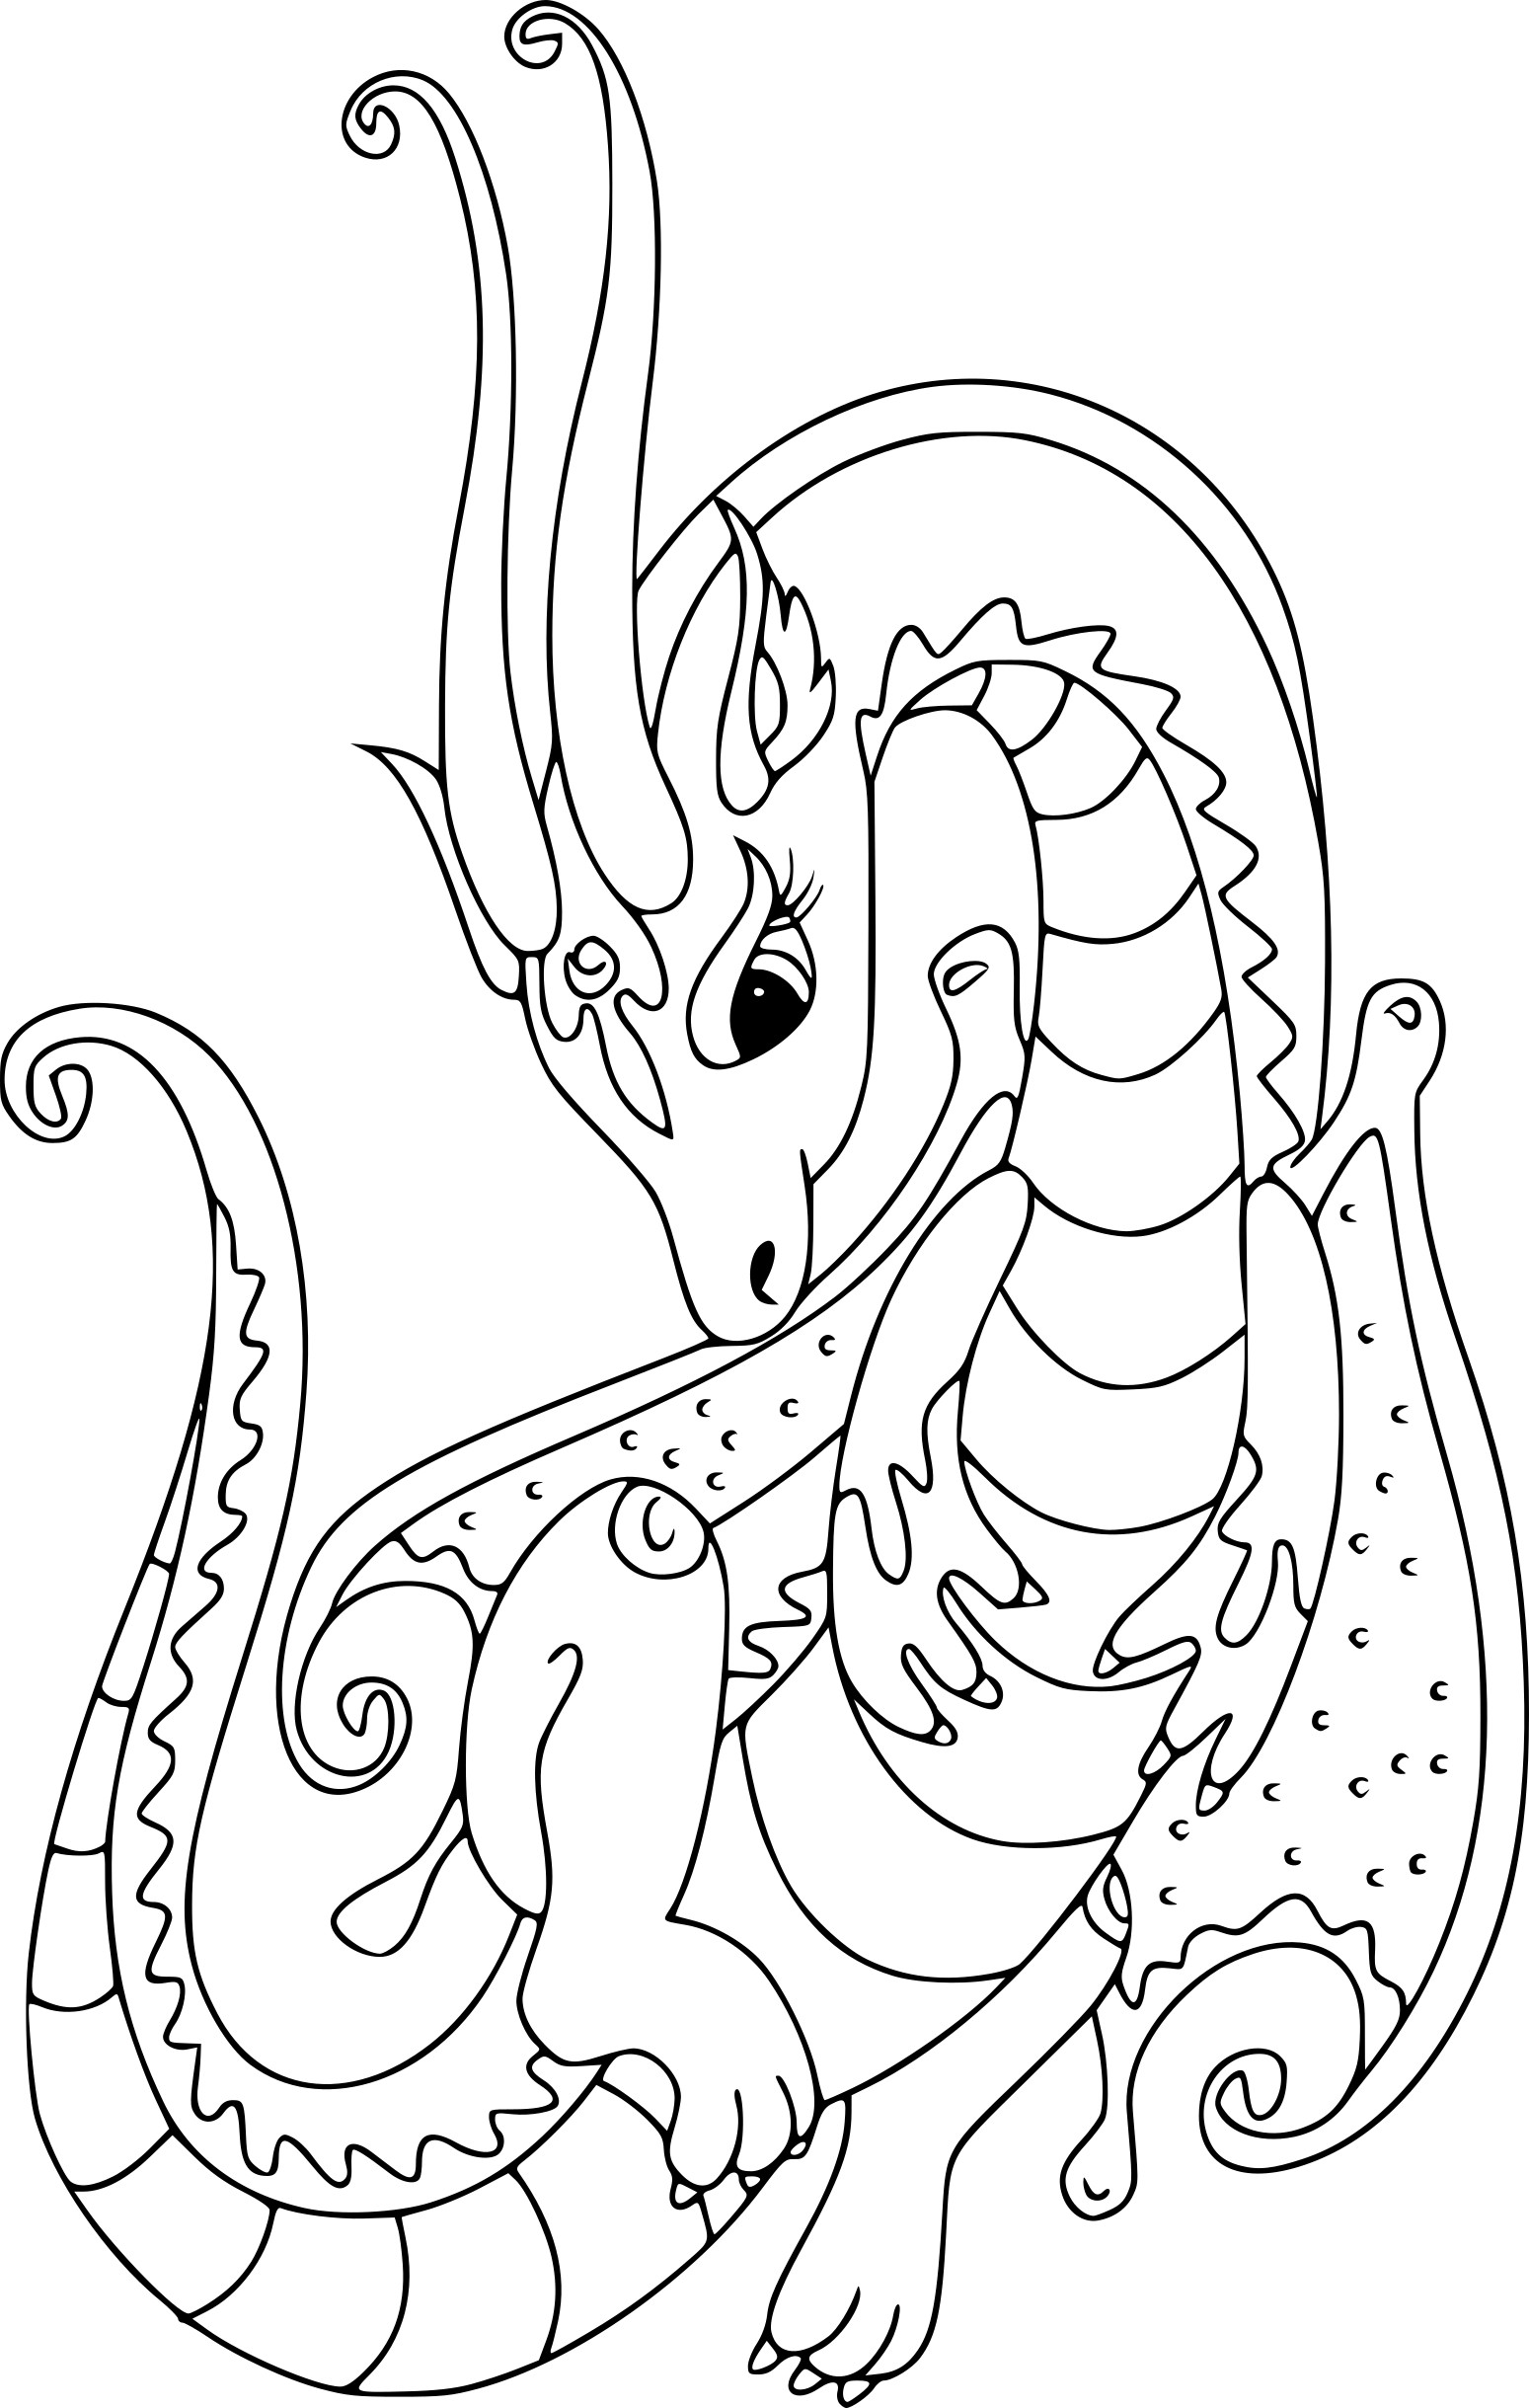 coloriage dragon pour fille imprimer. Black Bedroom Furniture Sets. Home Design Ideas